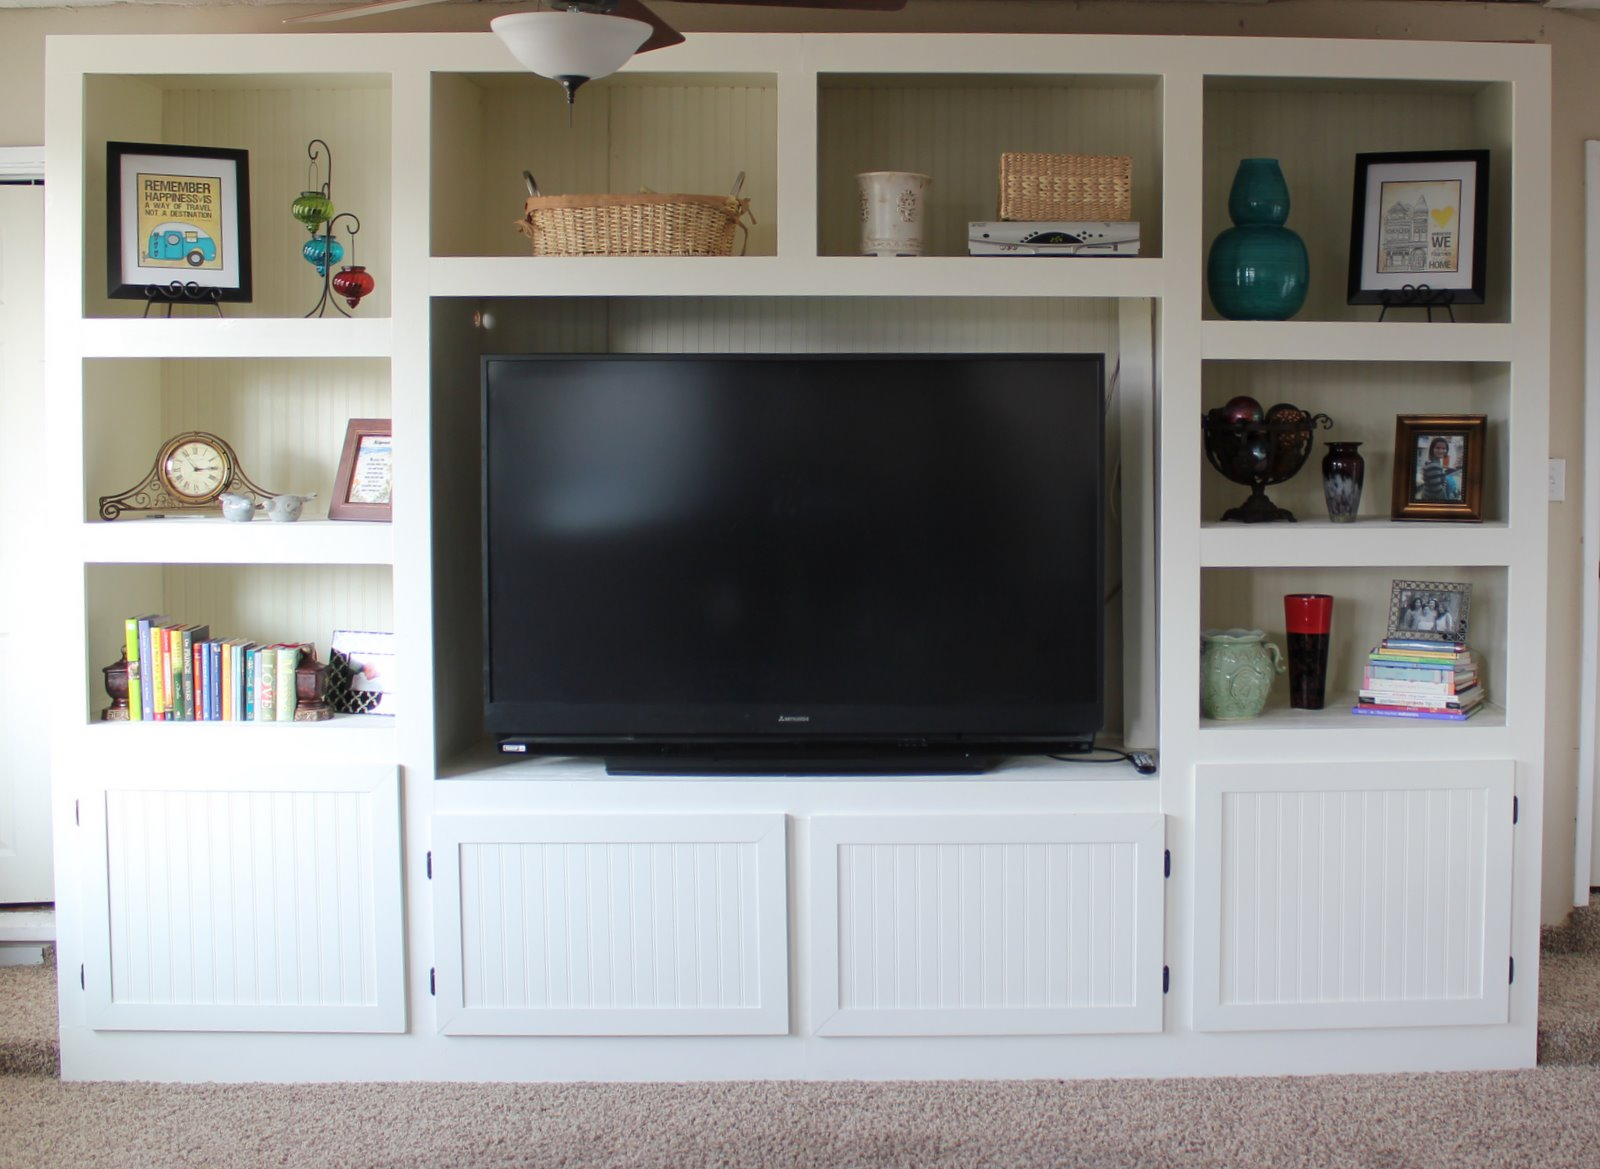 Attirant Remodelaholic | Living Room Renovation With DIY Entertainment Center For  Flat Screen TV